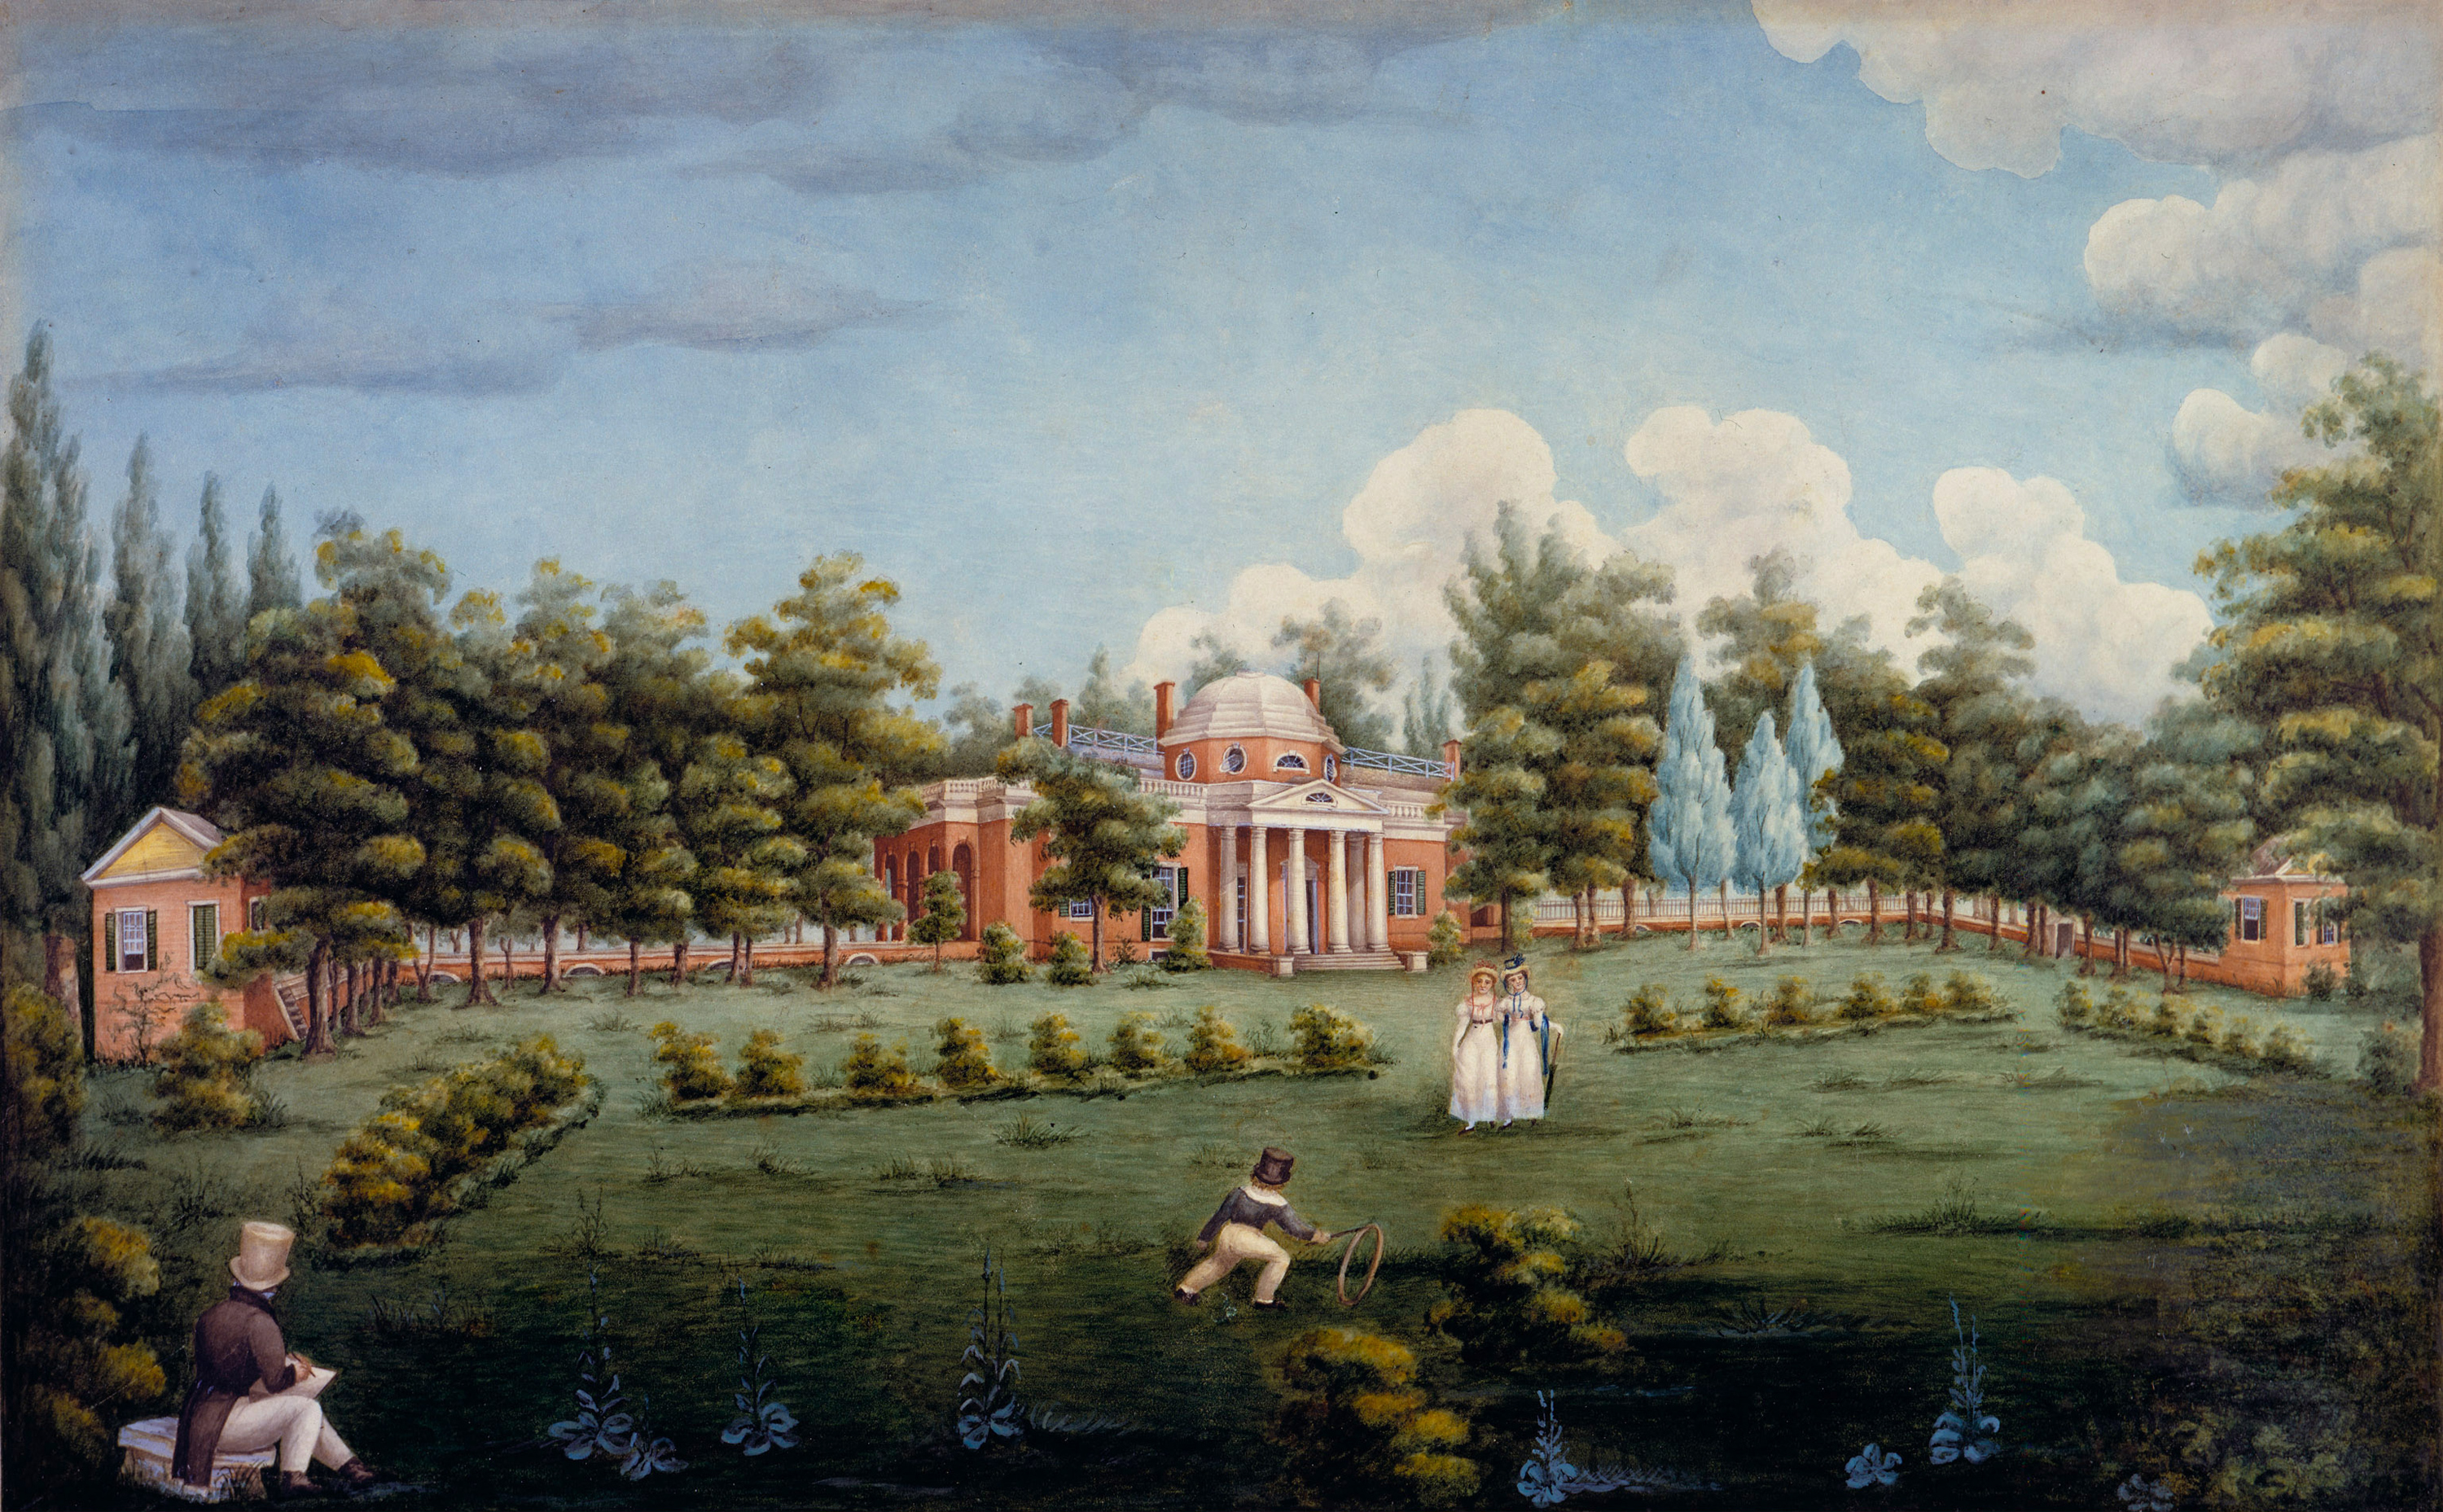 Peticolas, View of the West Front of Monticello and Garden, 1825